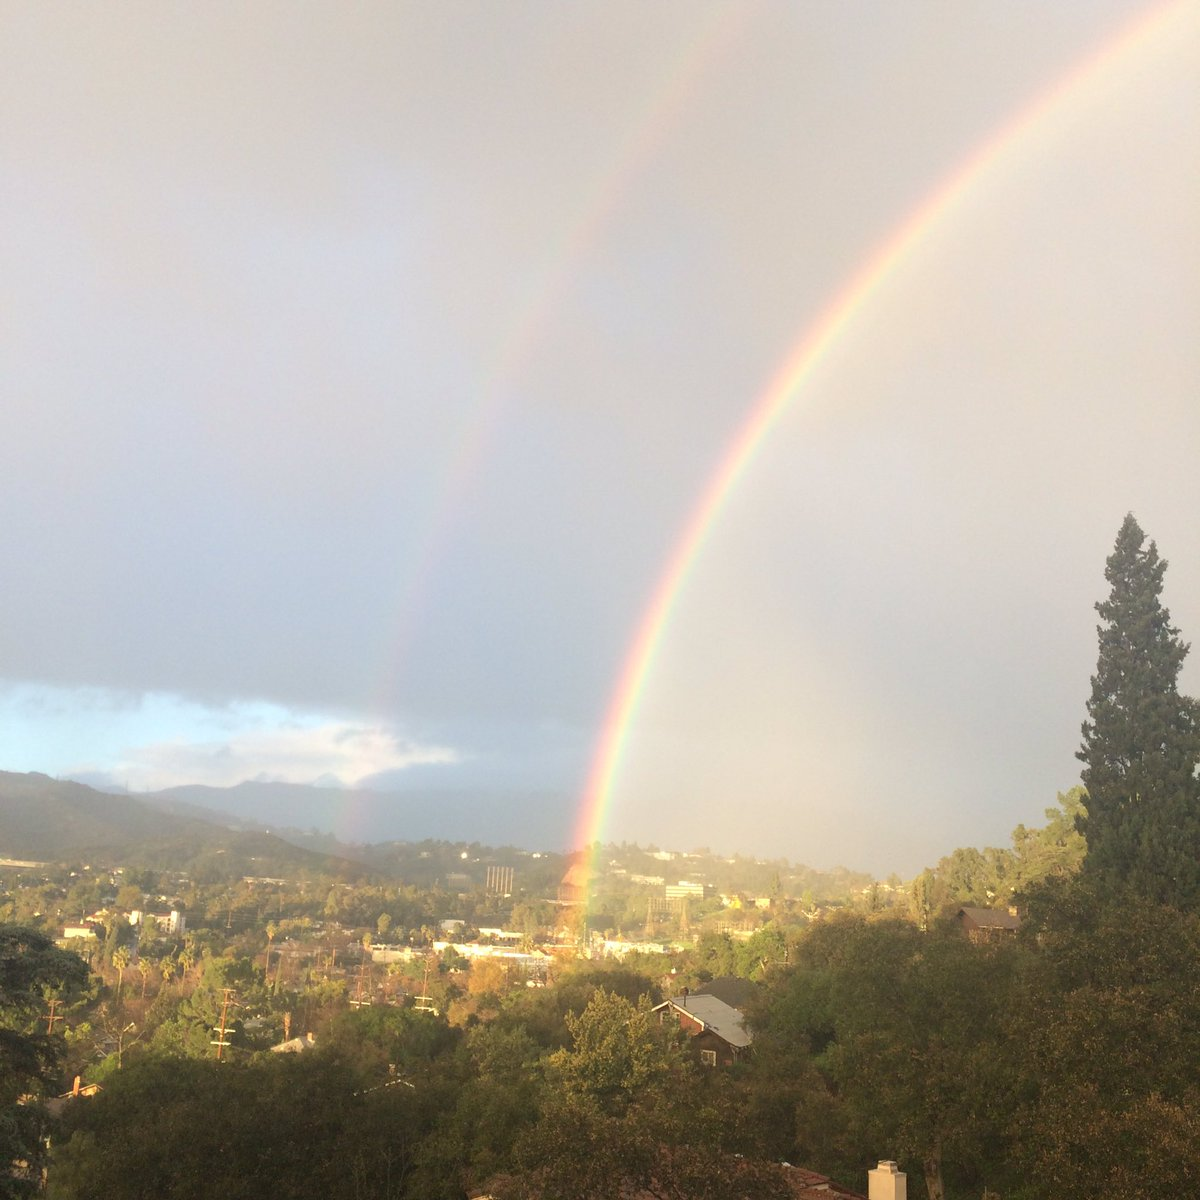 Double rainbow over Eagle Rock #LArain <br>http://pic.twitter.com/5Jf3BTY3IQ